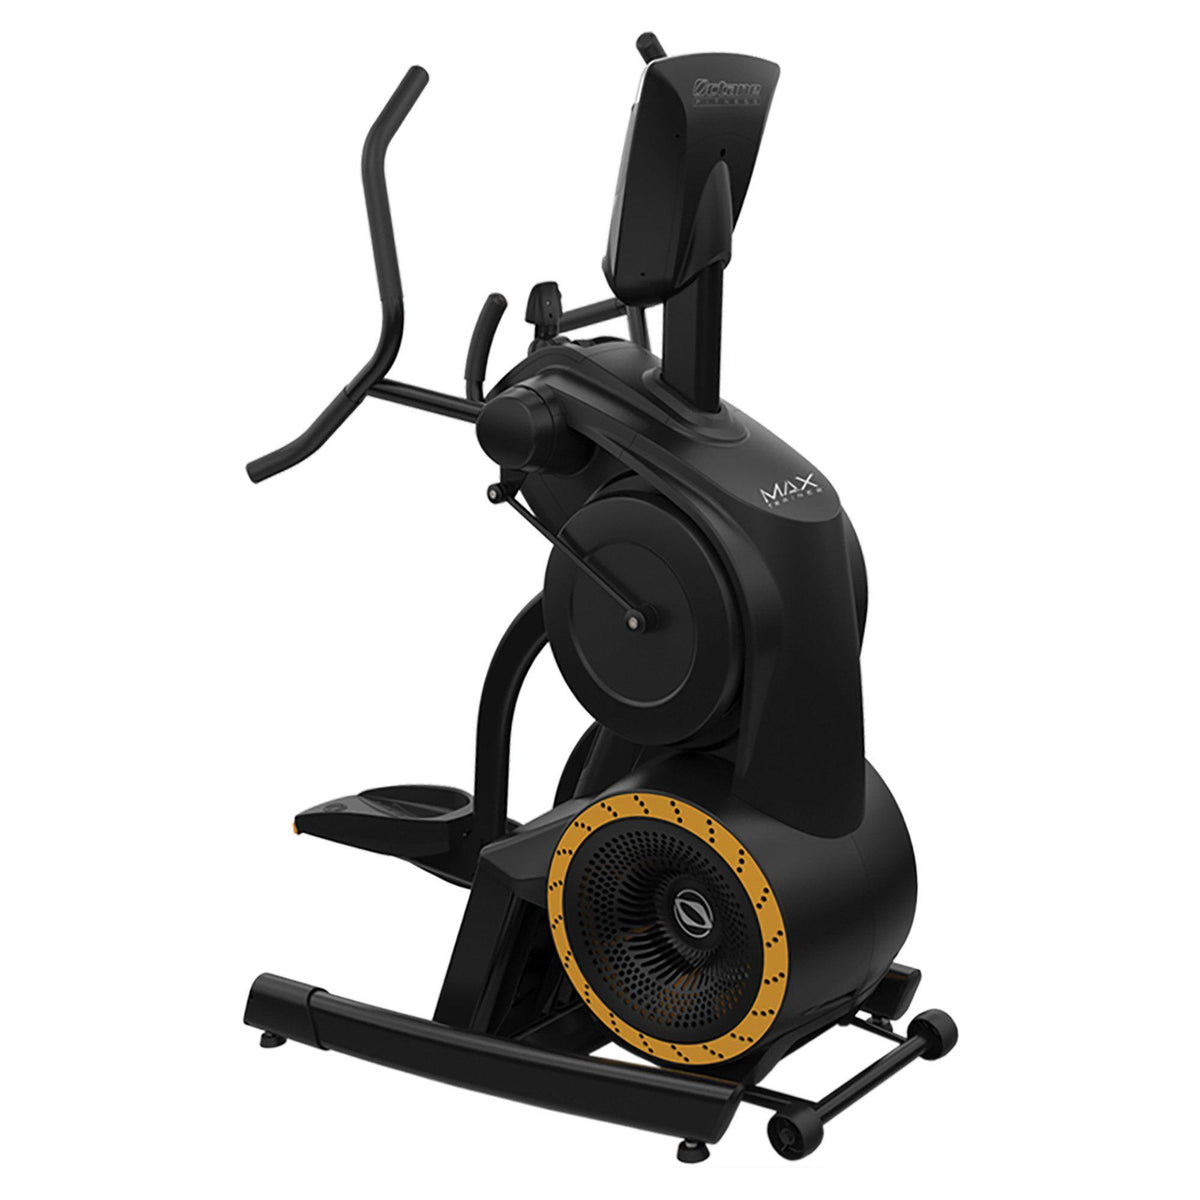 Octane MTX Max Trainer Stepper Cross Trainer-Cross Trainer-Octane-Cardio Online